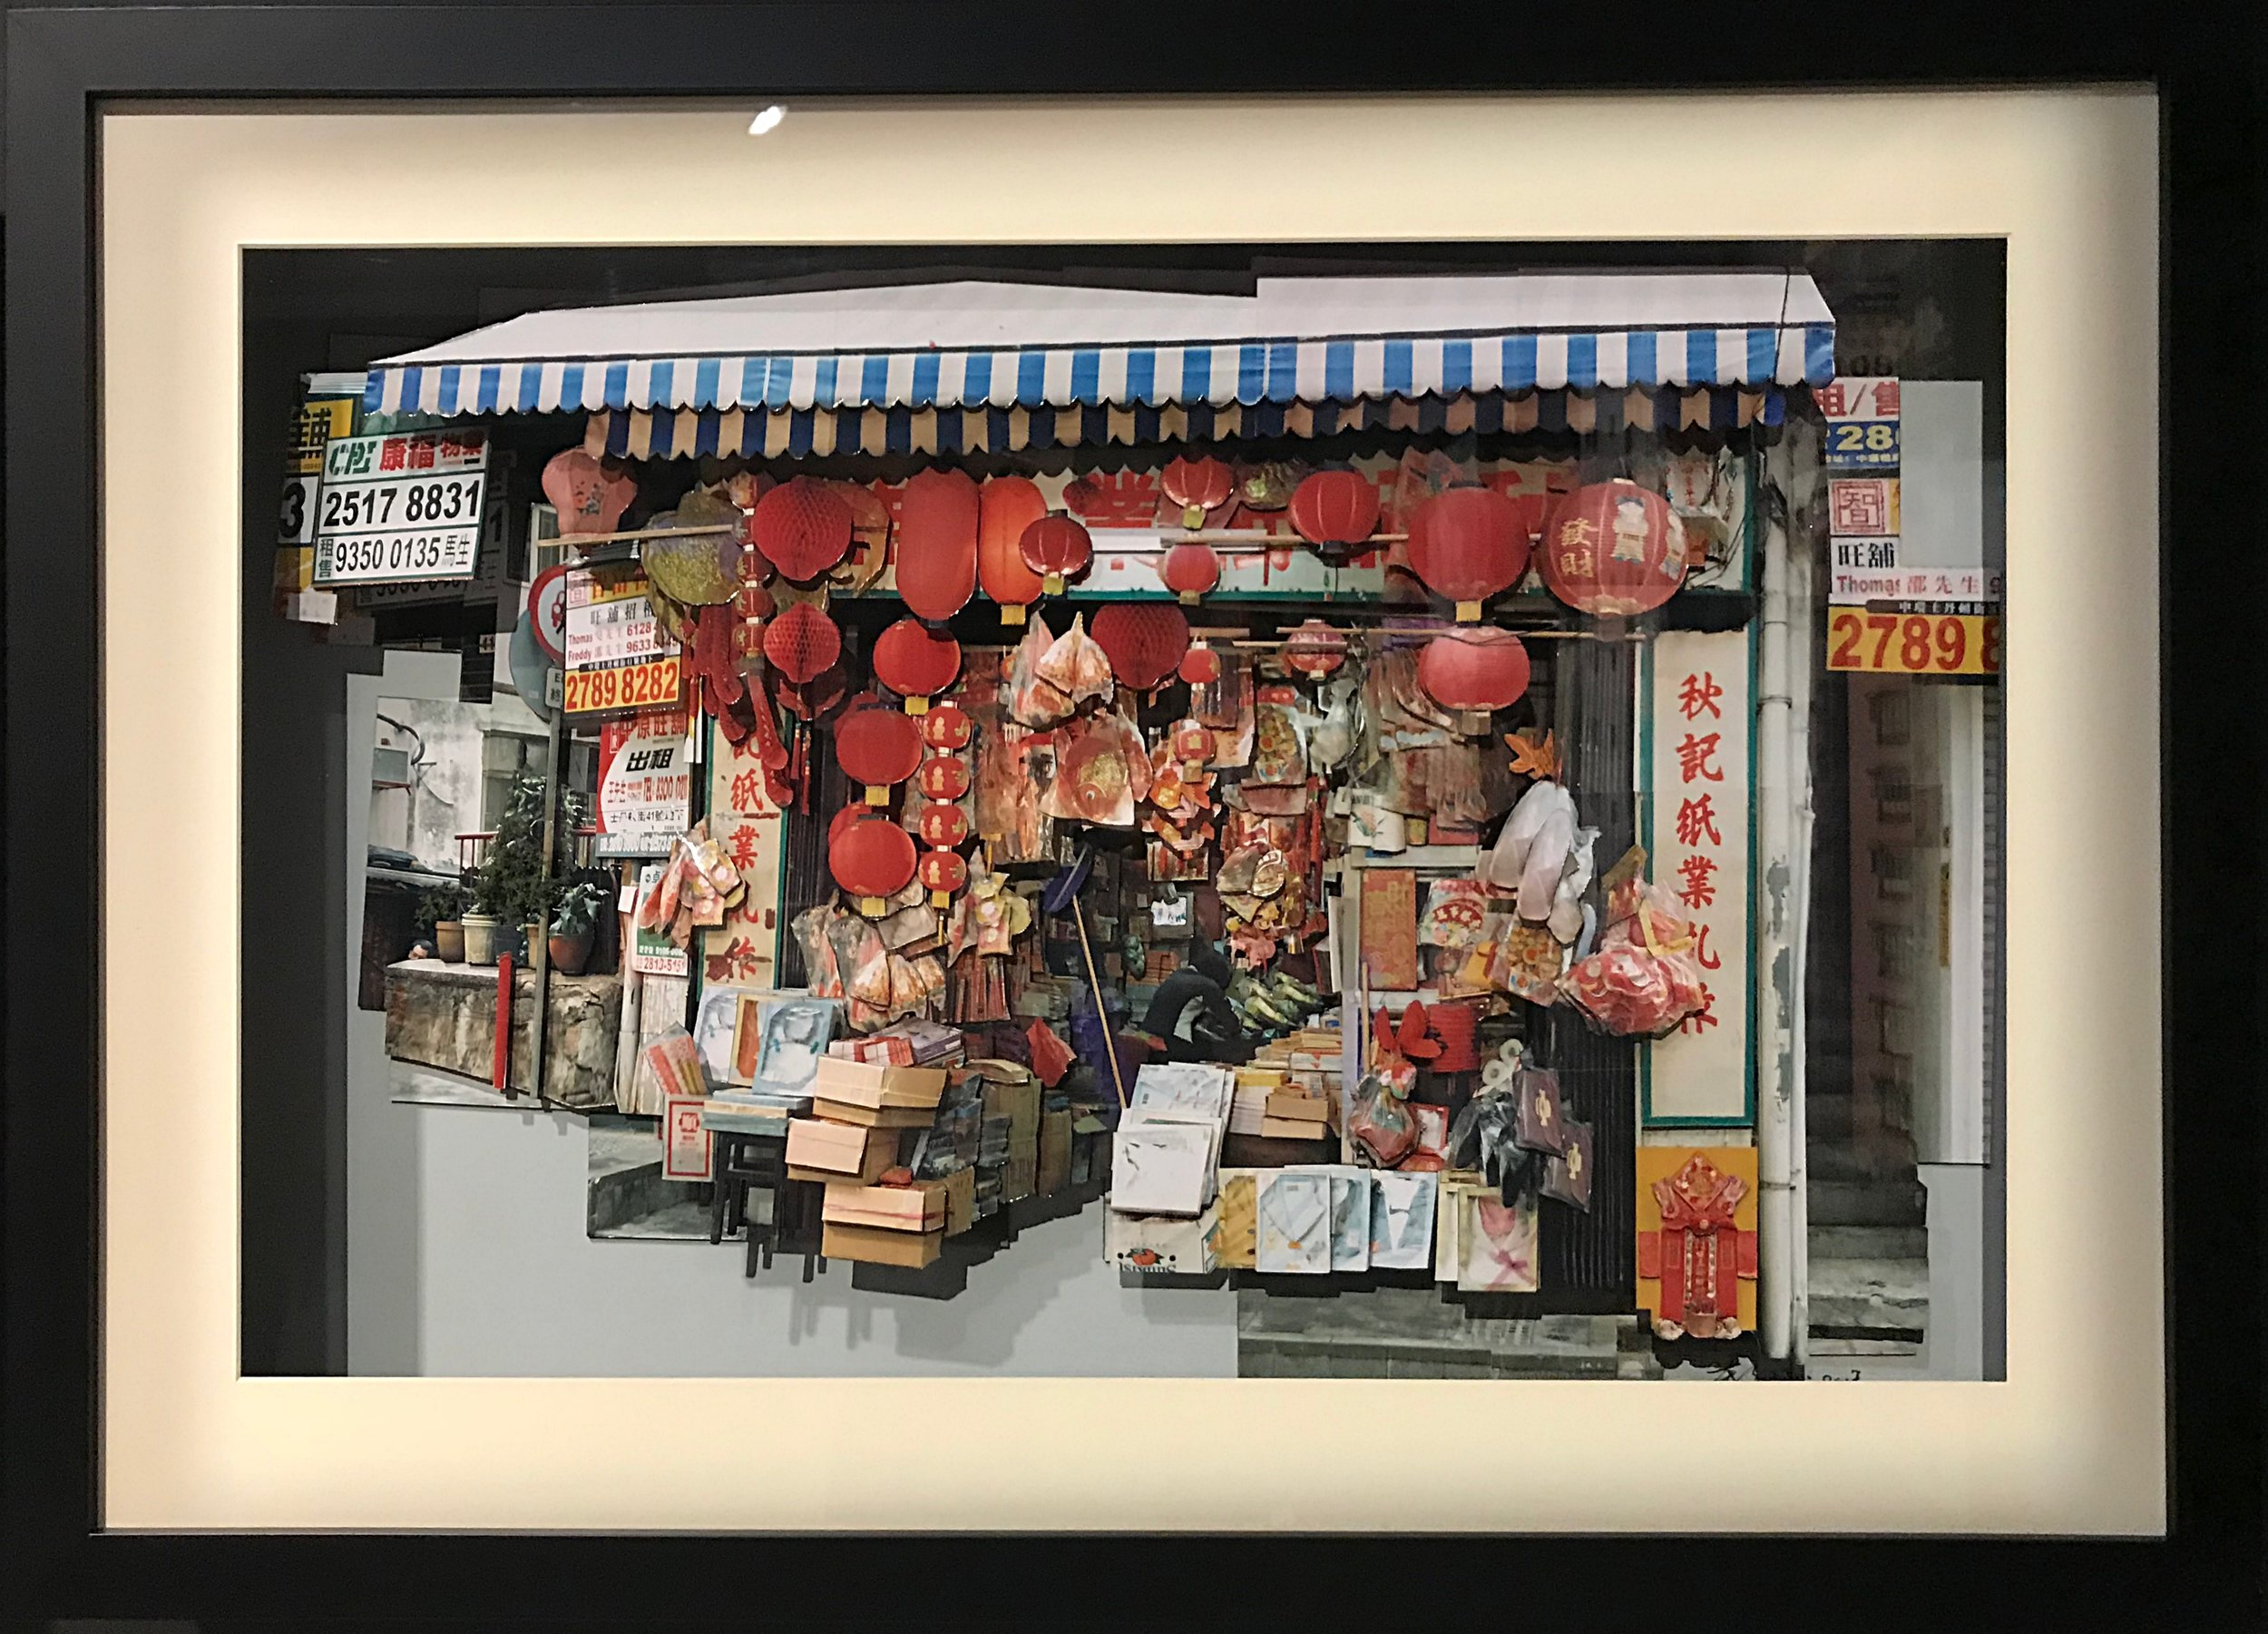 "葉家偉 Alexis Ip, 秋記紙業·中環,  Chau Kee Paper Offerings (Central,  Hong Kong, 2017), ""Fotomo"" 3-D Collage open edition, H 60 x 85 cm, HK$ 18,800 including frame"